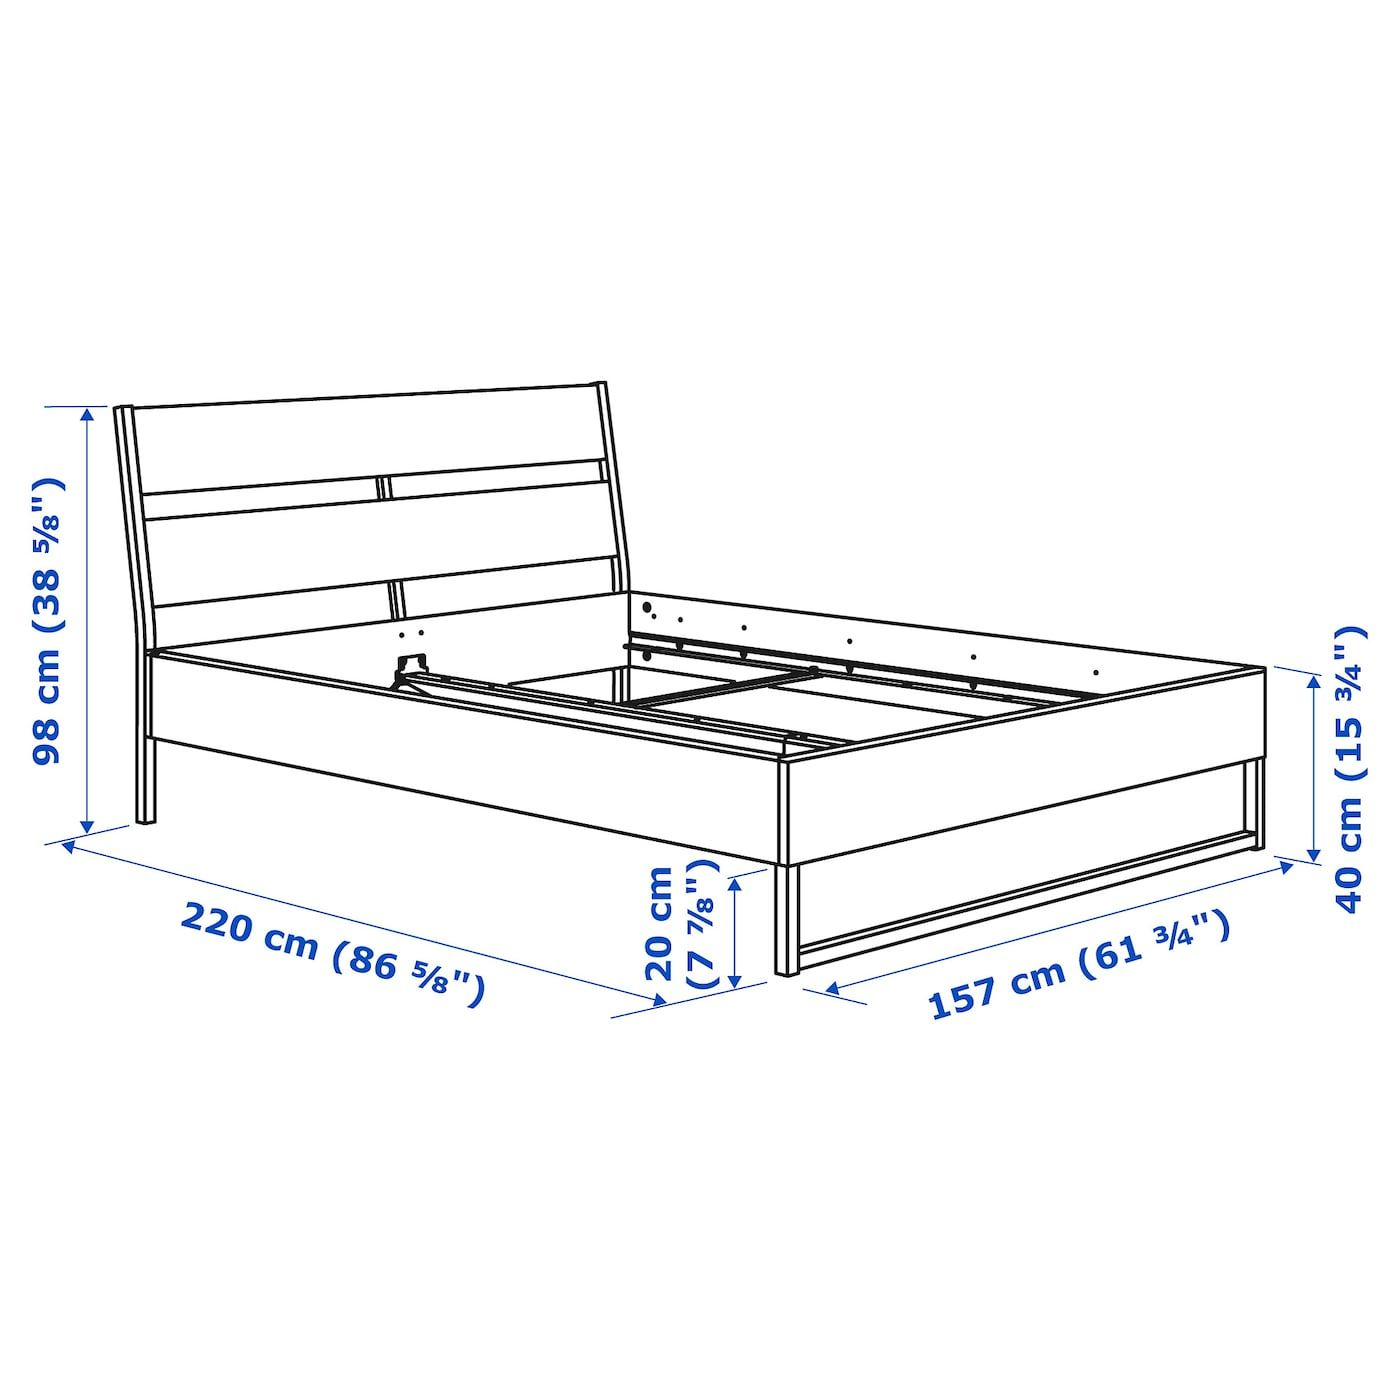 Ikea Trysil Bed Frame In 2020 Bed Frame Black Bedding Ikea Trysil